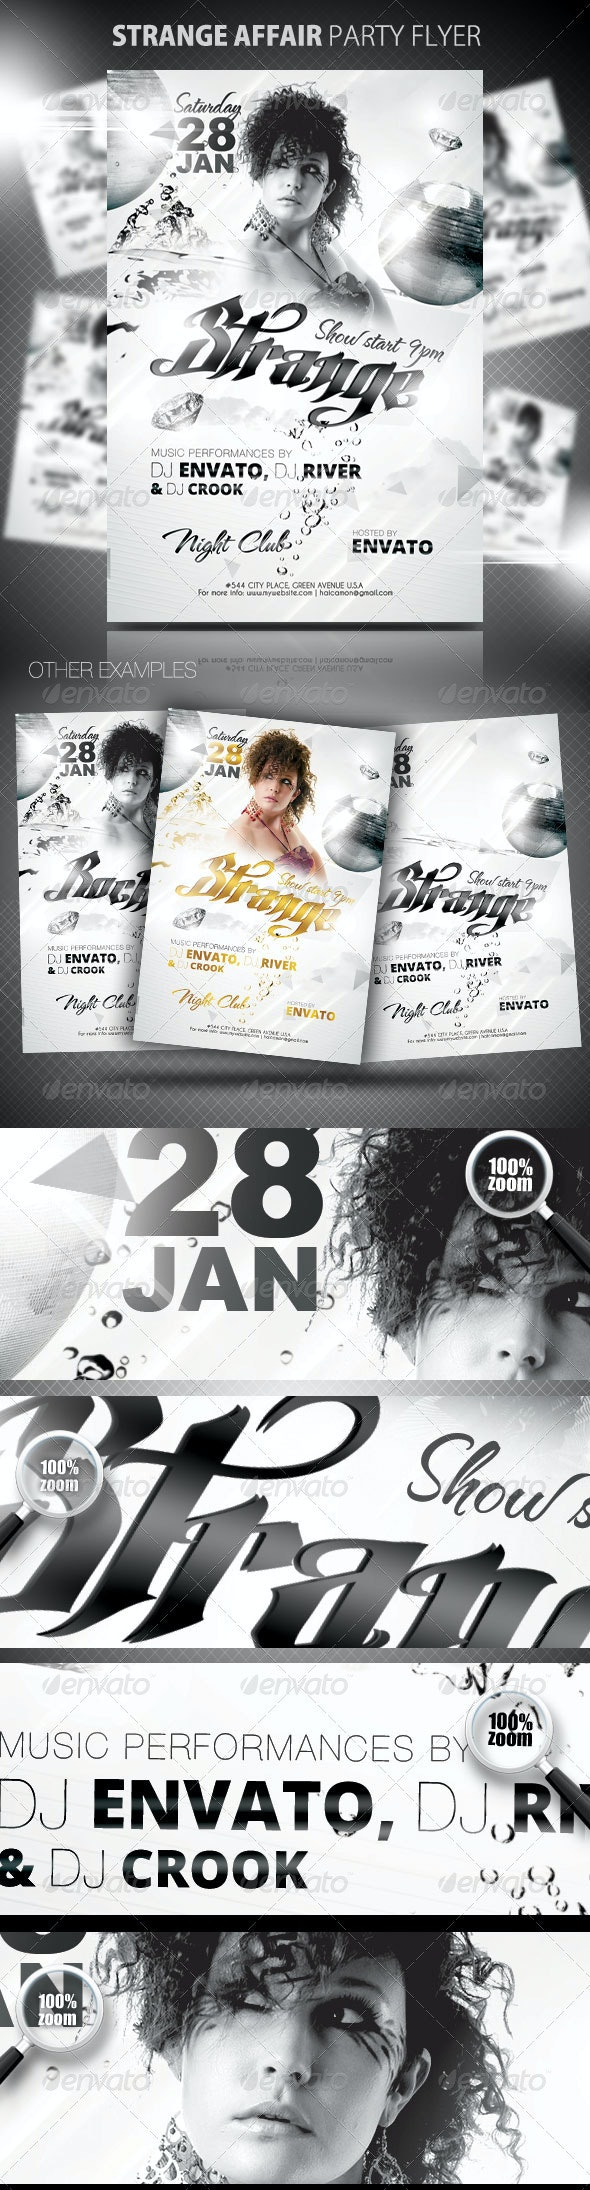 Strange Affair Party Flyer - Clubs & Parties Events